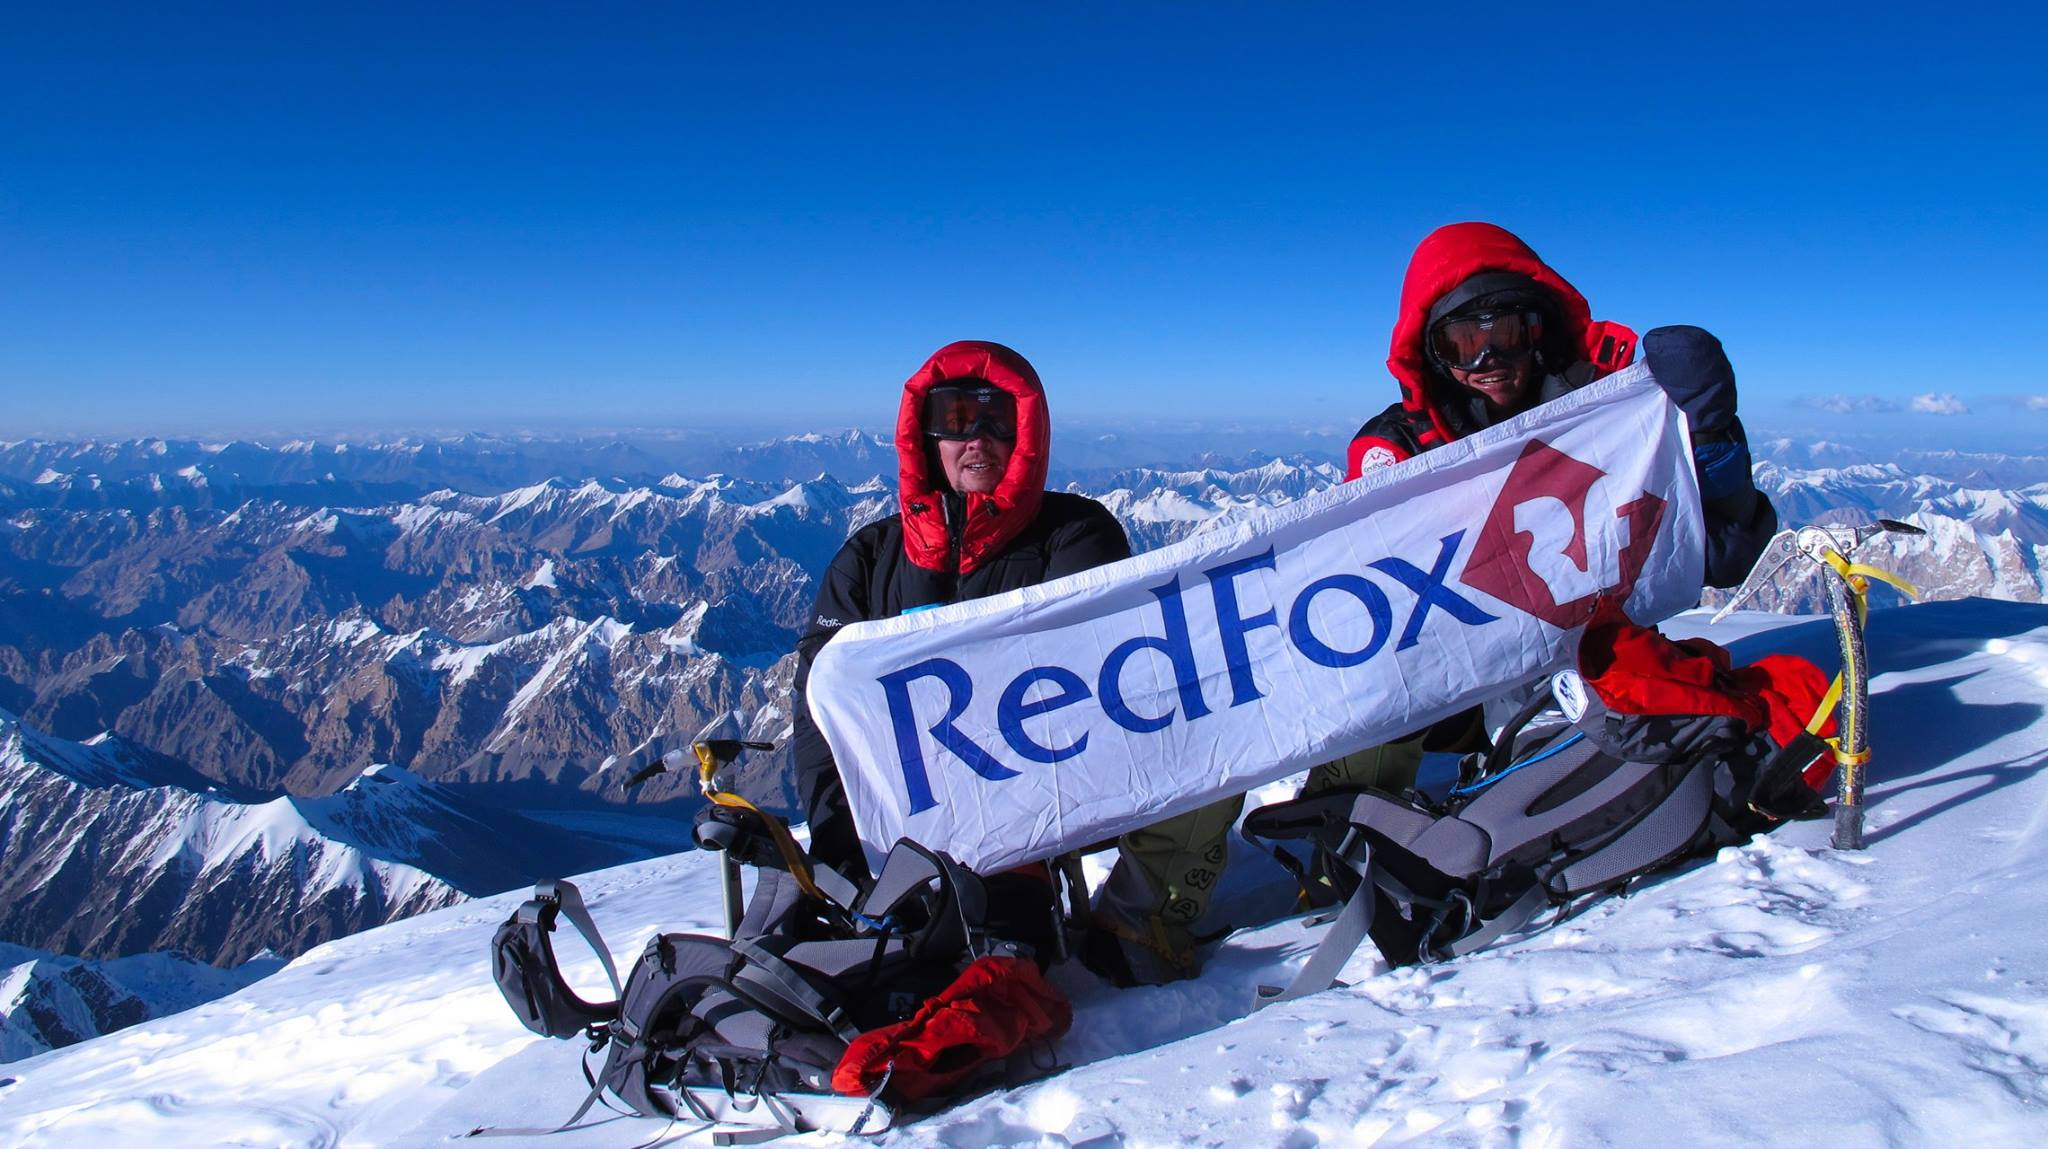 hikers with red fox banner on top of a mountain